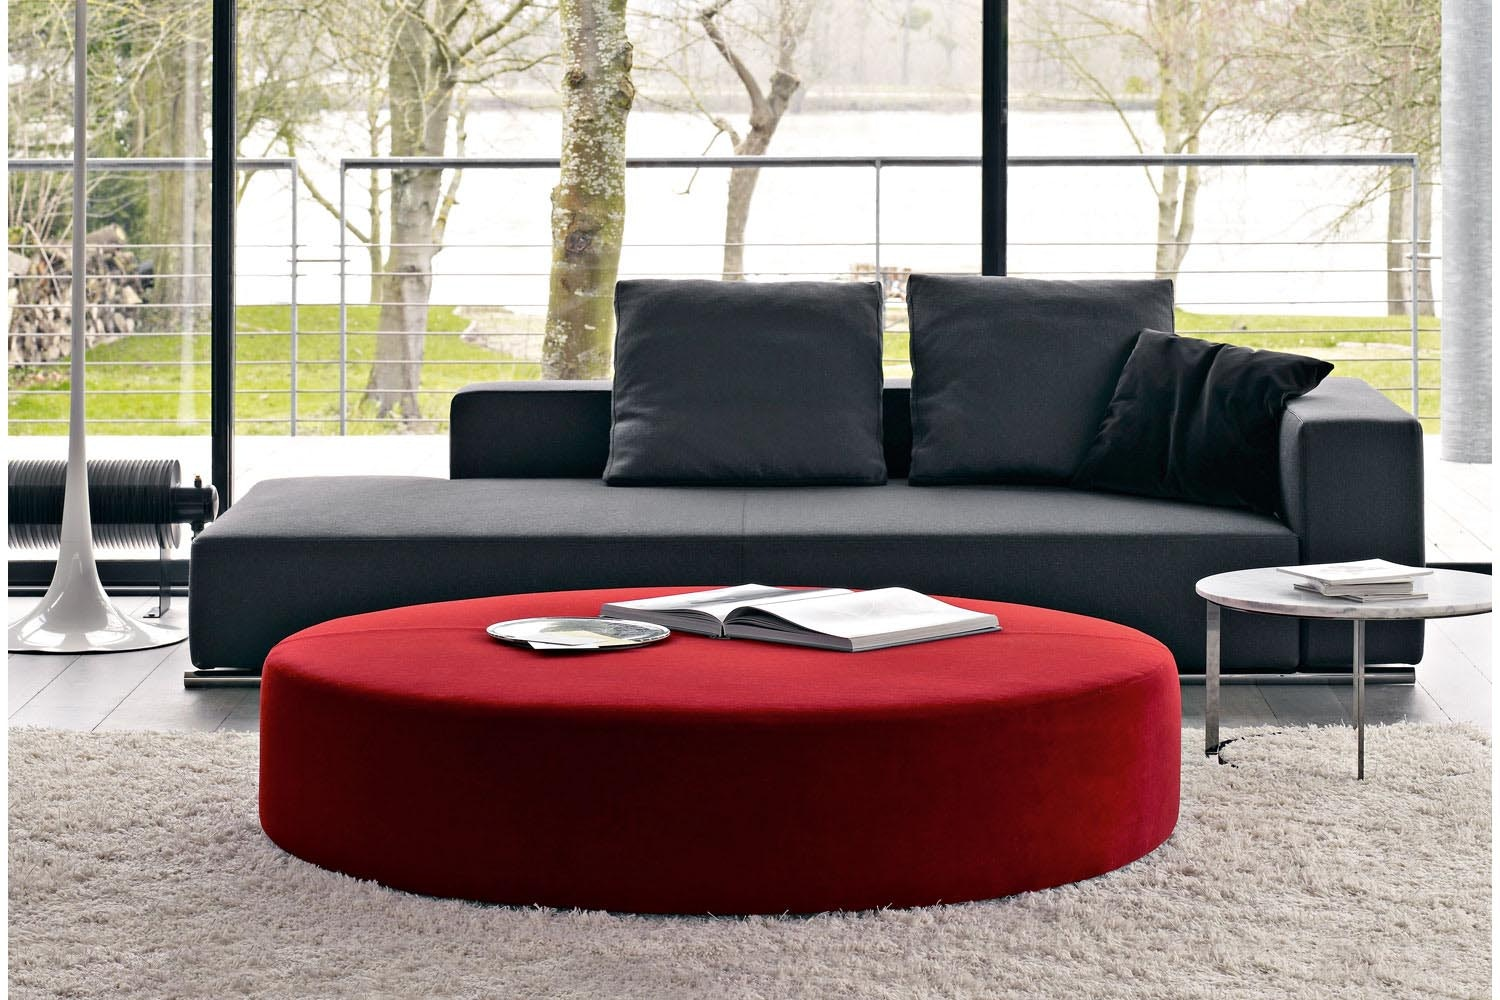 Harry Large Ottoman by Antonio Citterio for B&B Italia